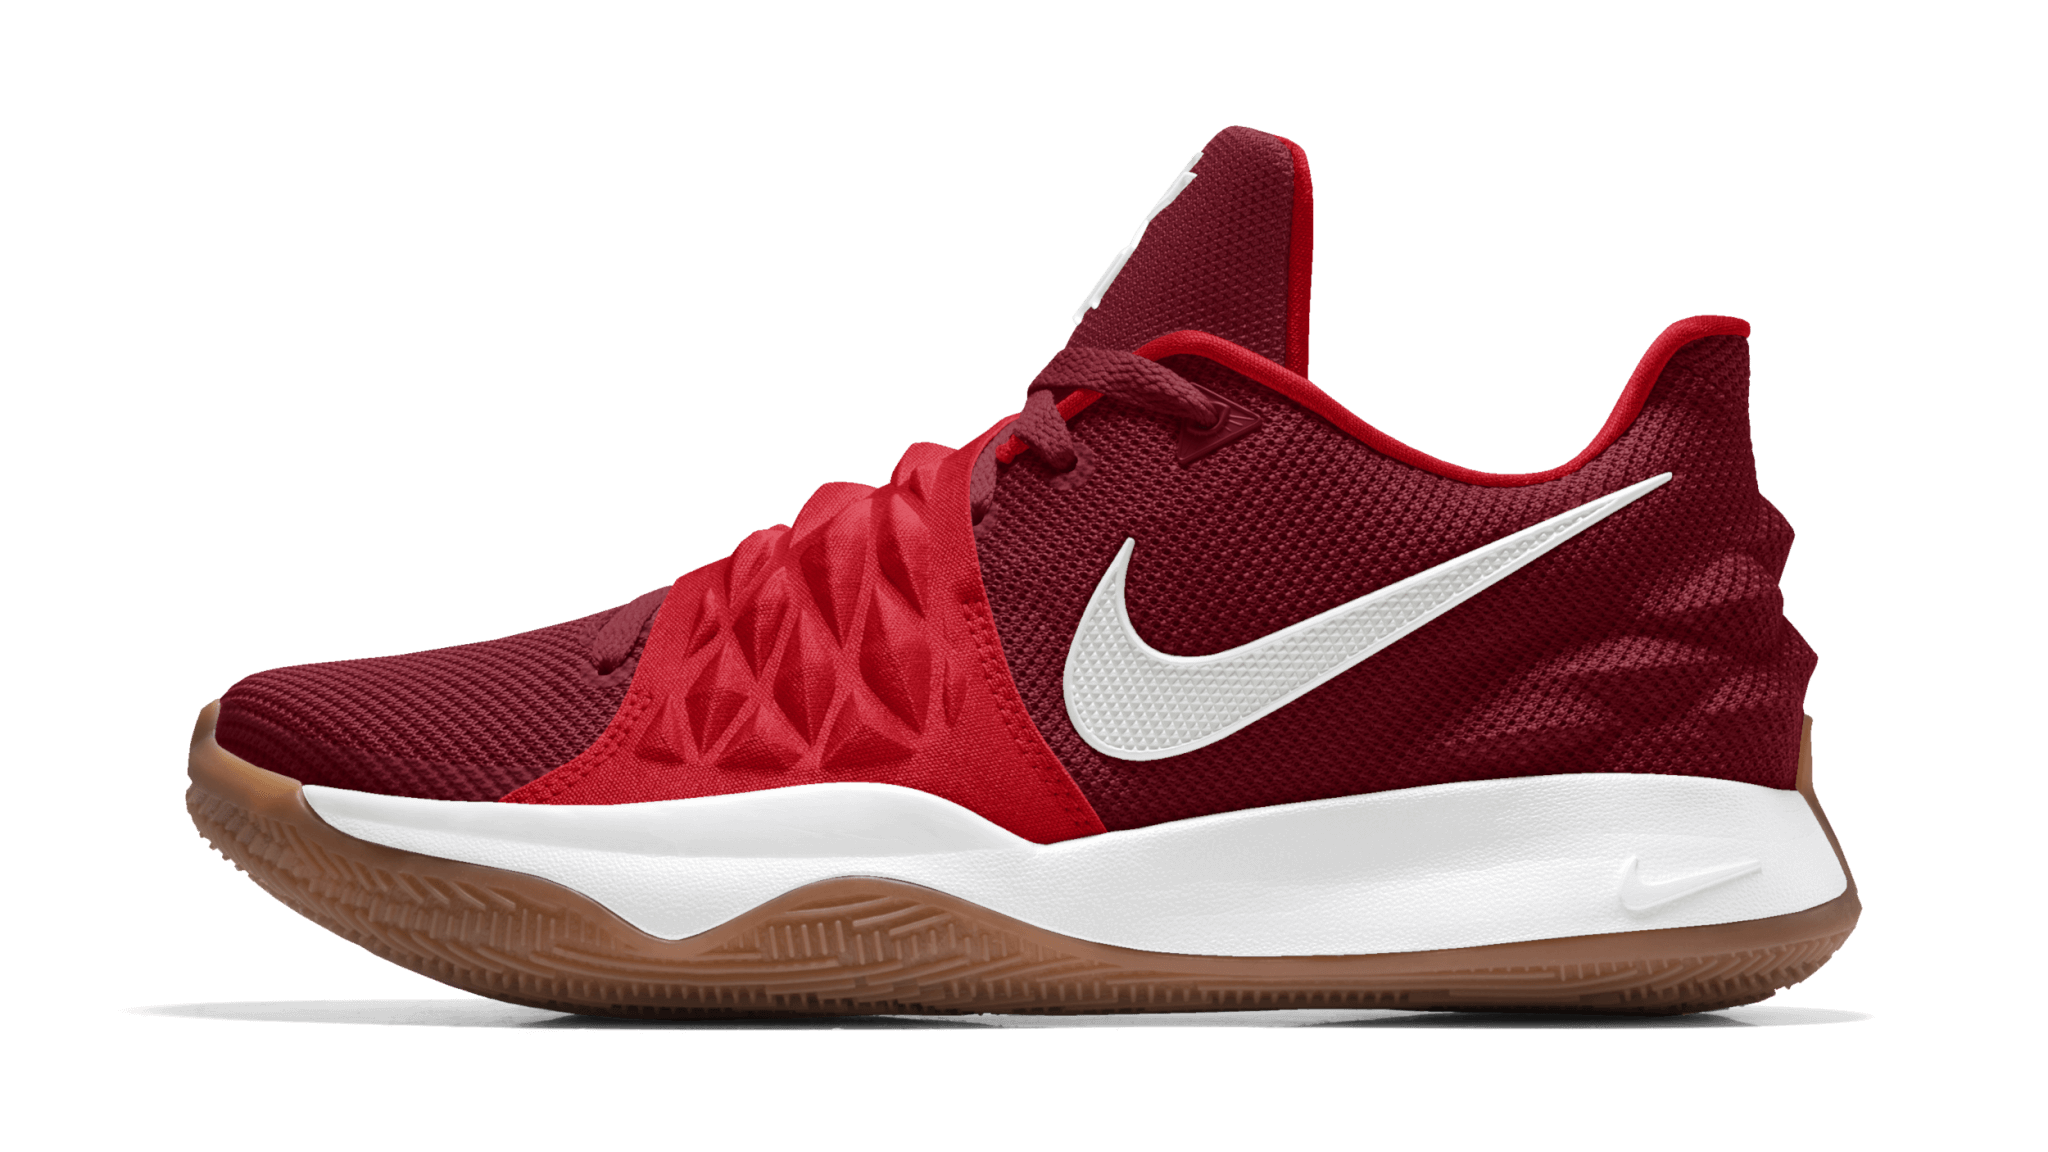 98b70196f6cd Nike Kyrie Low Performance Review